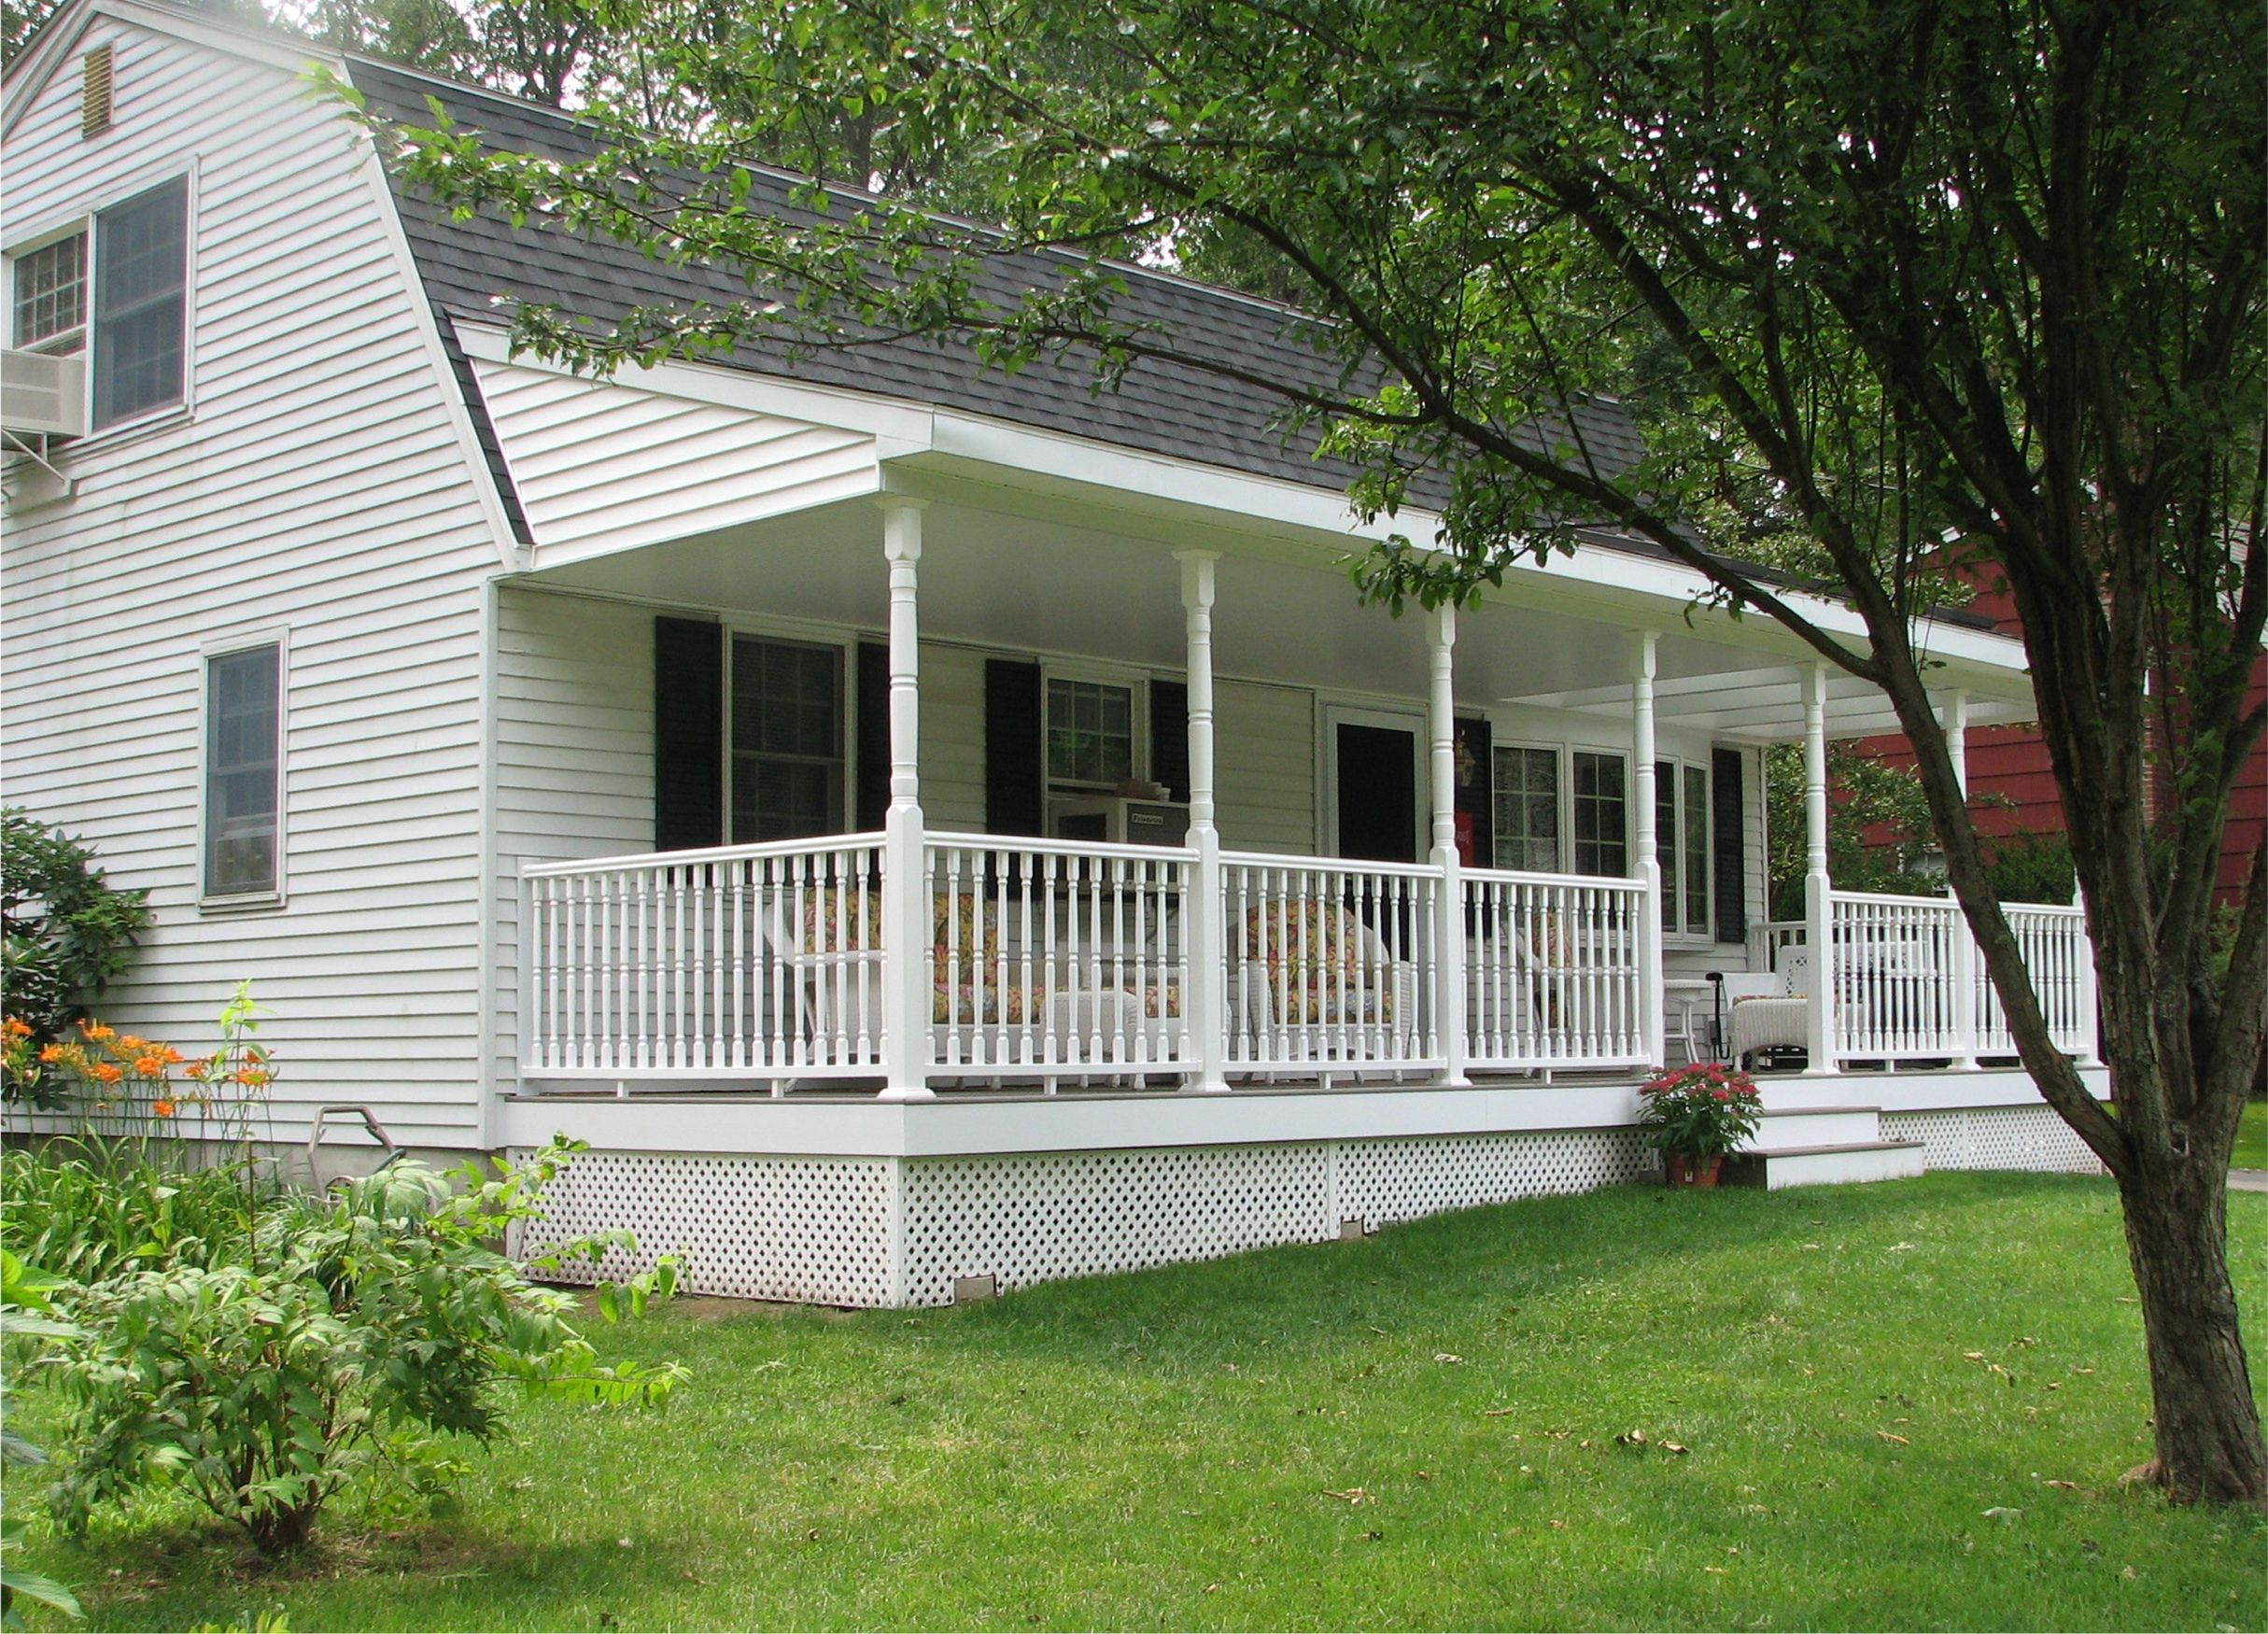 Prefabricated Porches front porch designs for mobile homes | homesfeed